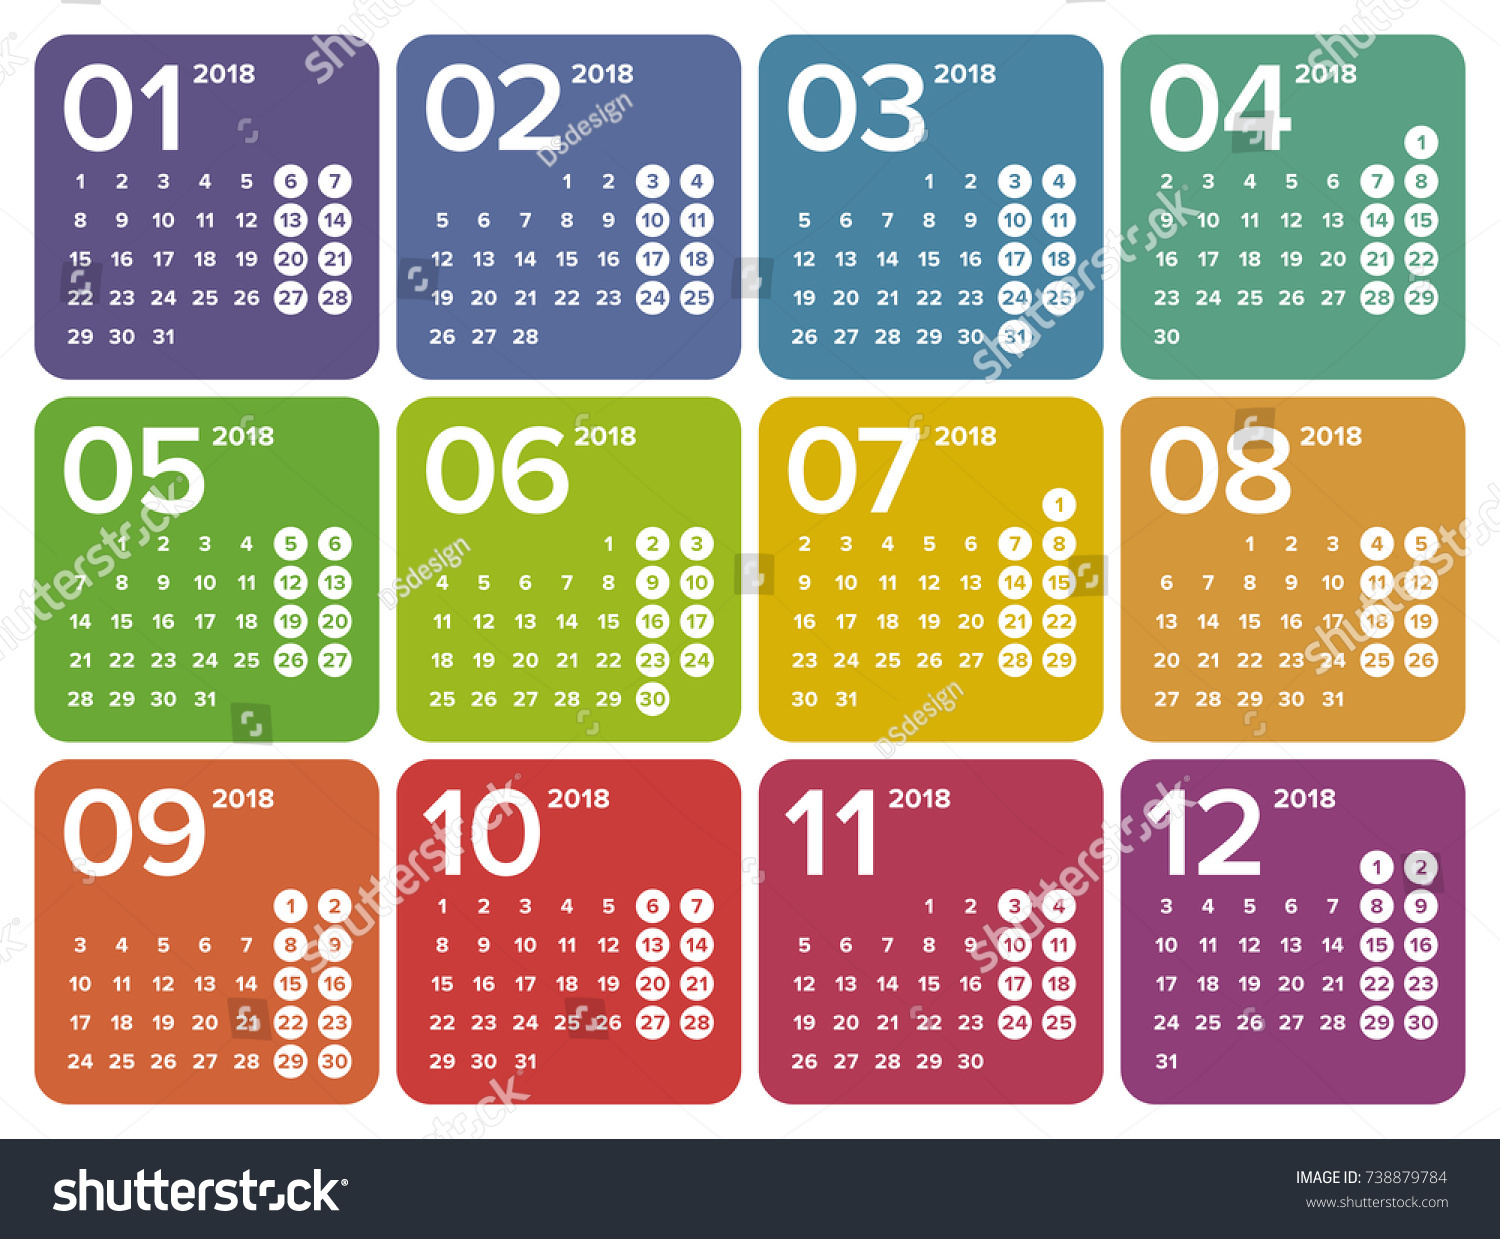 Simple colorful universal calendar 2018 calendar stock vector simple colorful universal calendar for 2018 the calendar does not contain any words or letters aljukfo Image collections